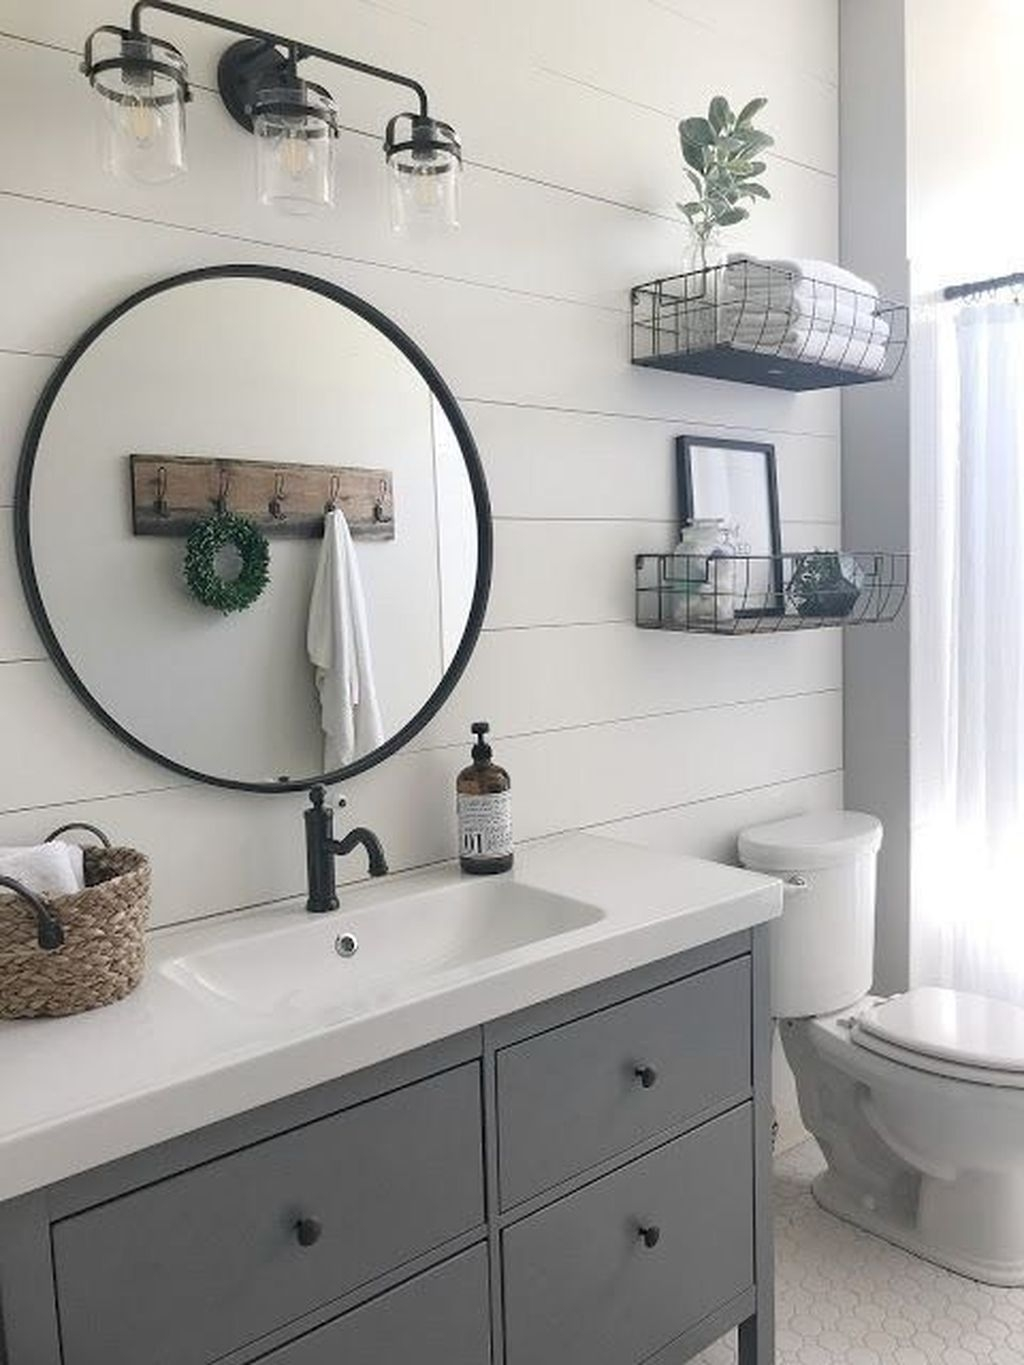 Latest Bathroom Decor Ideas That Match With Your Home Design11